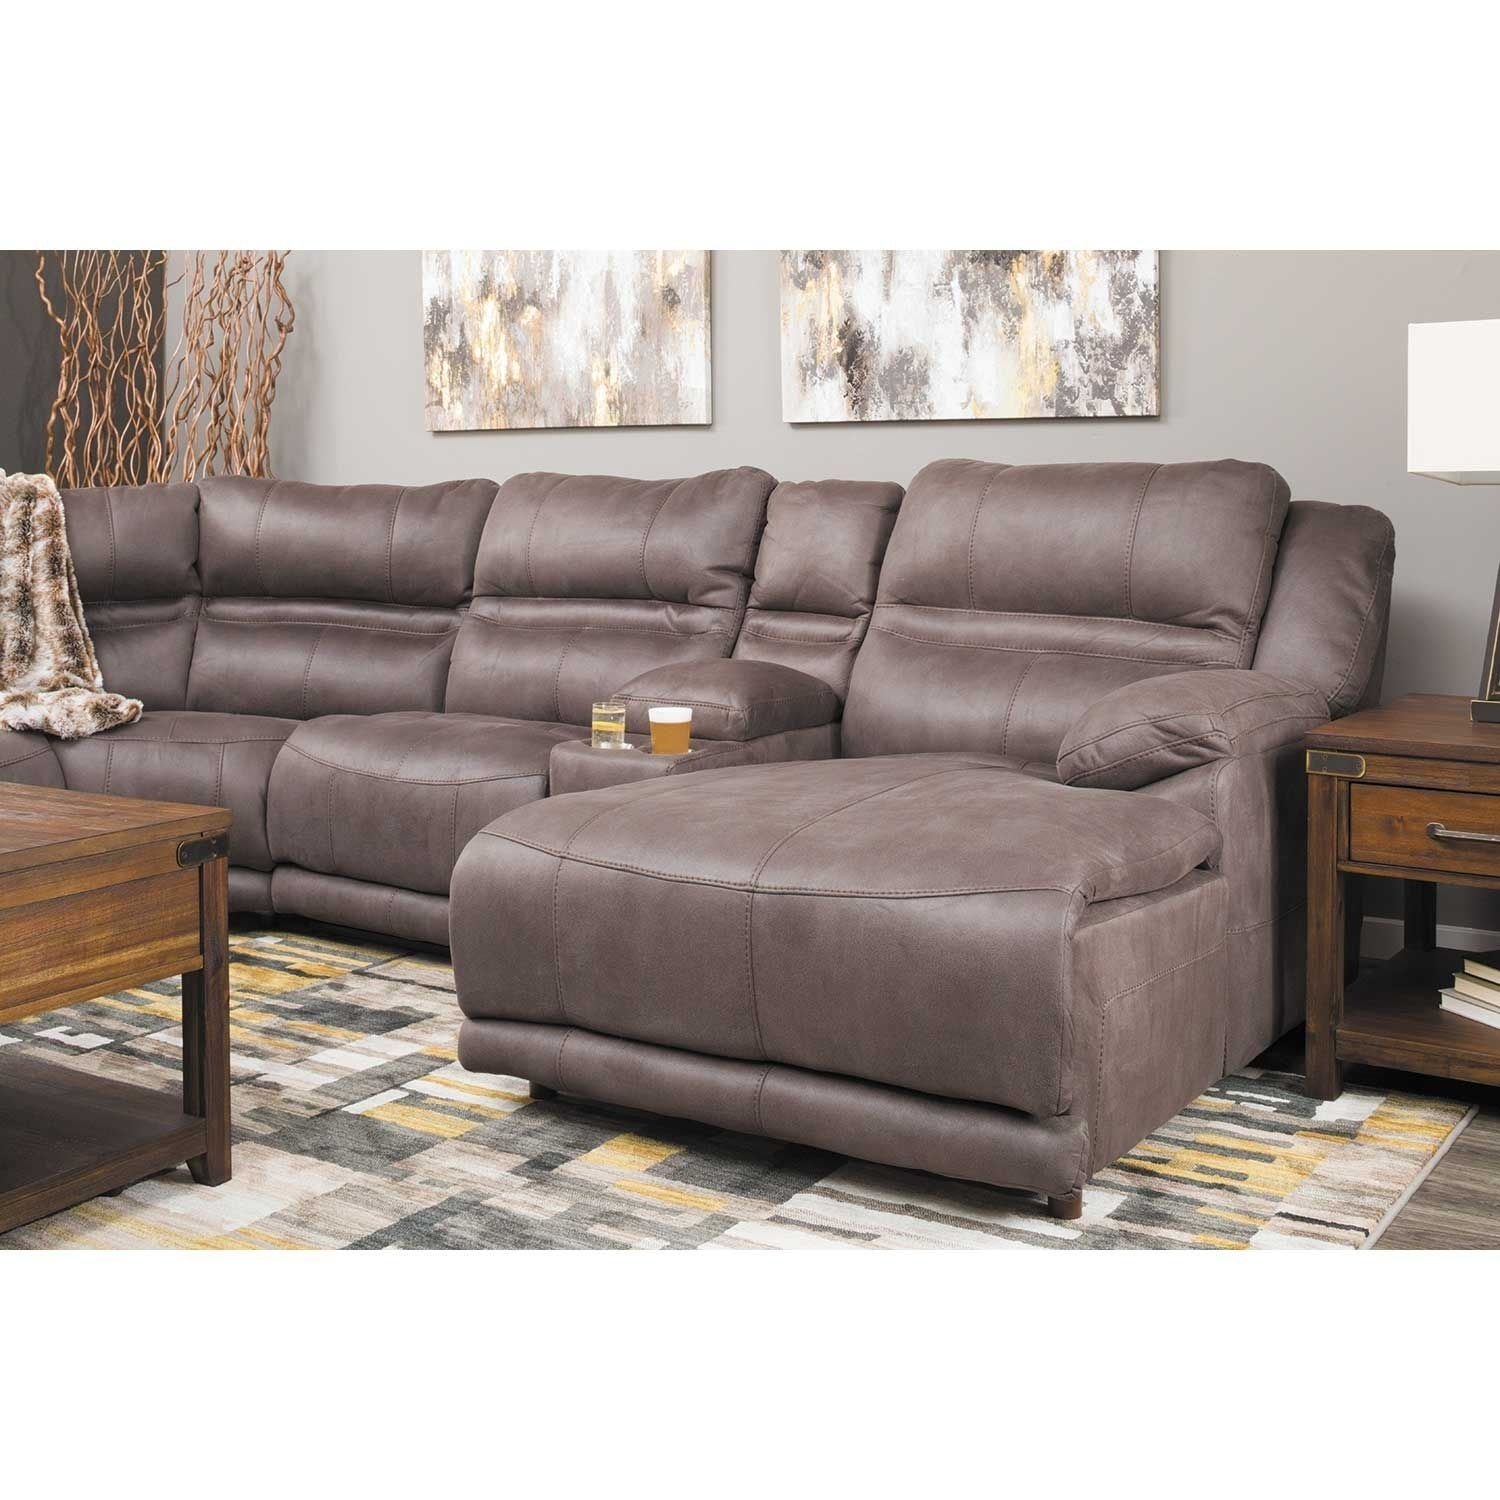 Braxton 6 Piece Power Reclining Sectional With Adjustable Headrest In Jackson 6 Piece Power Reclining Sectionals (Image 5 of 25)